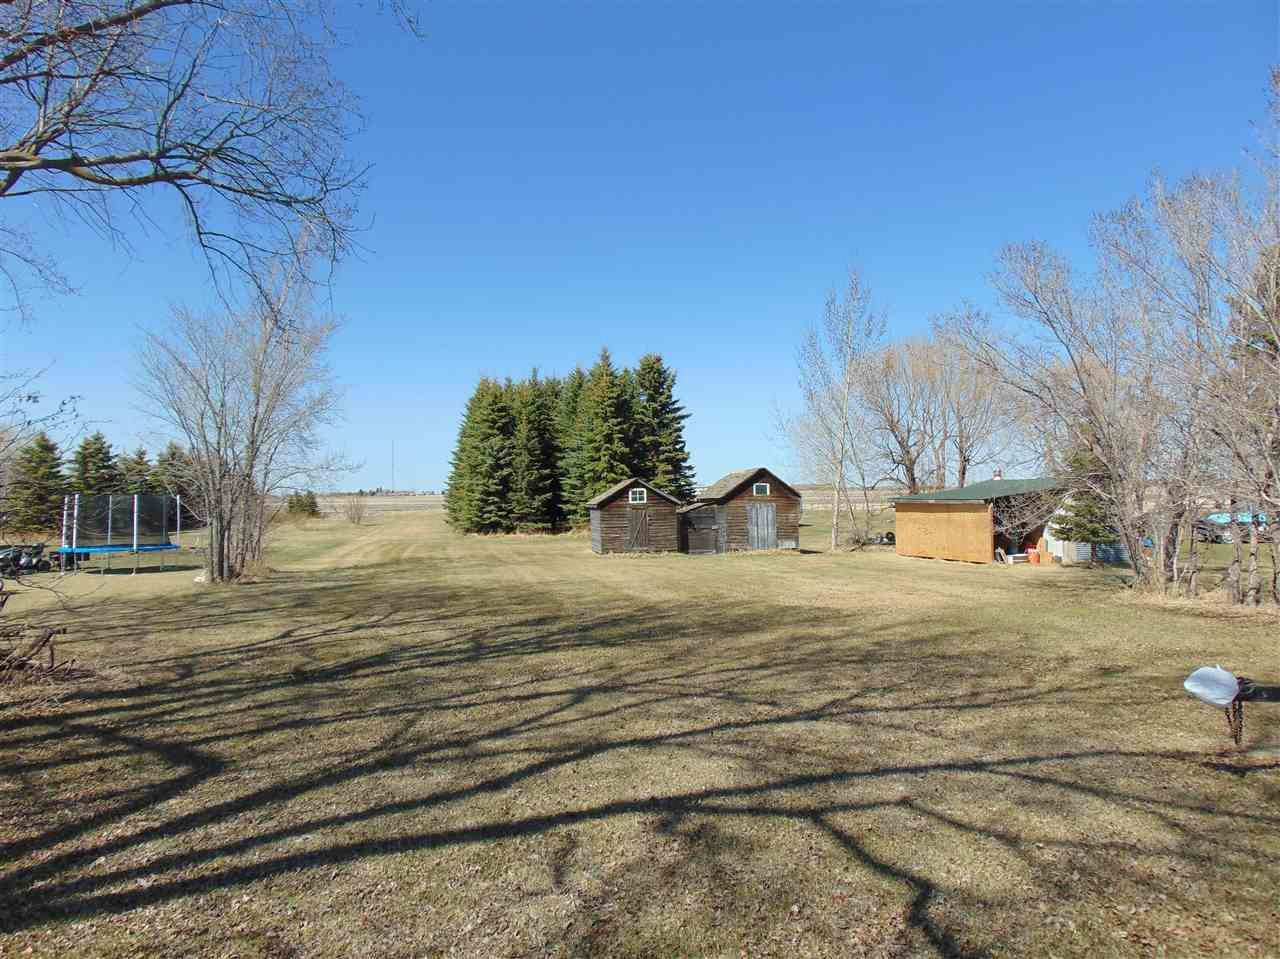 Main Photo: 4822 52 Avenue: Andrew Vacant Lot for sale : MLS®# E4242063